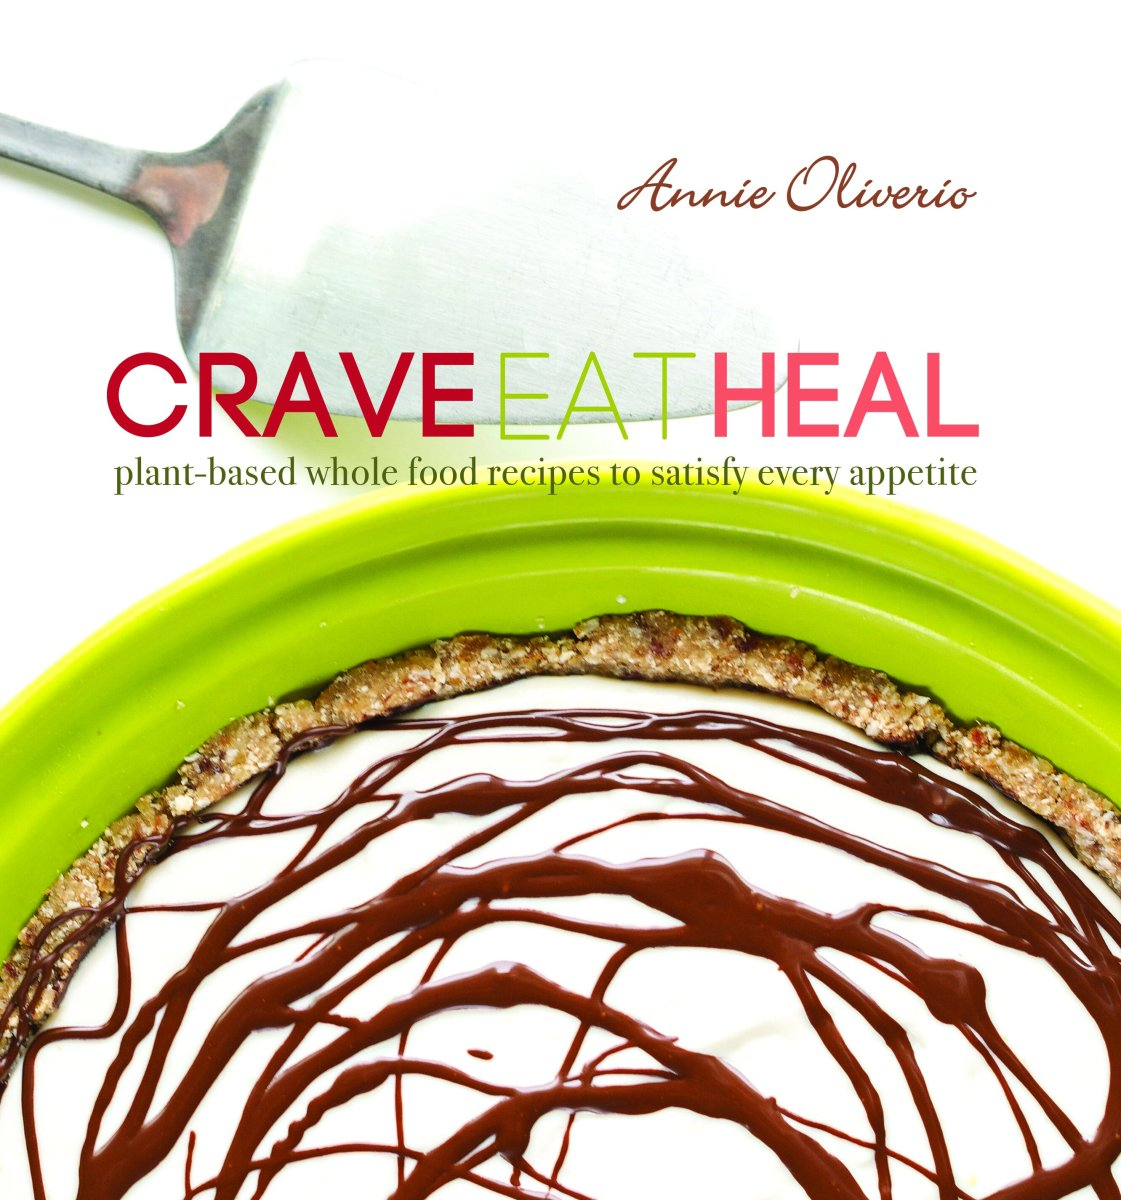 Pre-Order My Cookbook Crave Eat Heal + Get A Bonus E-Cookbook!